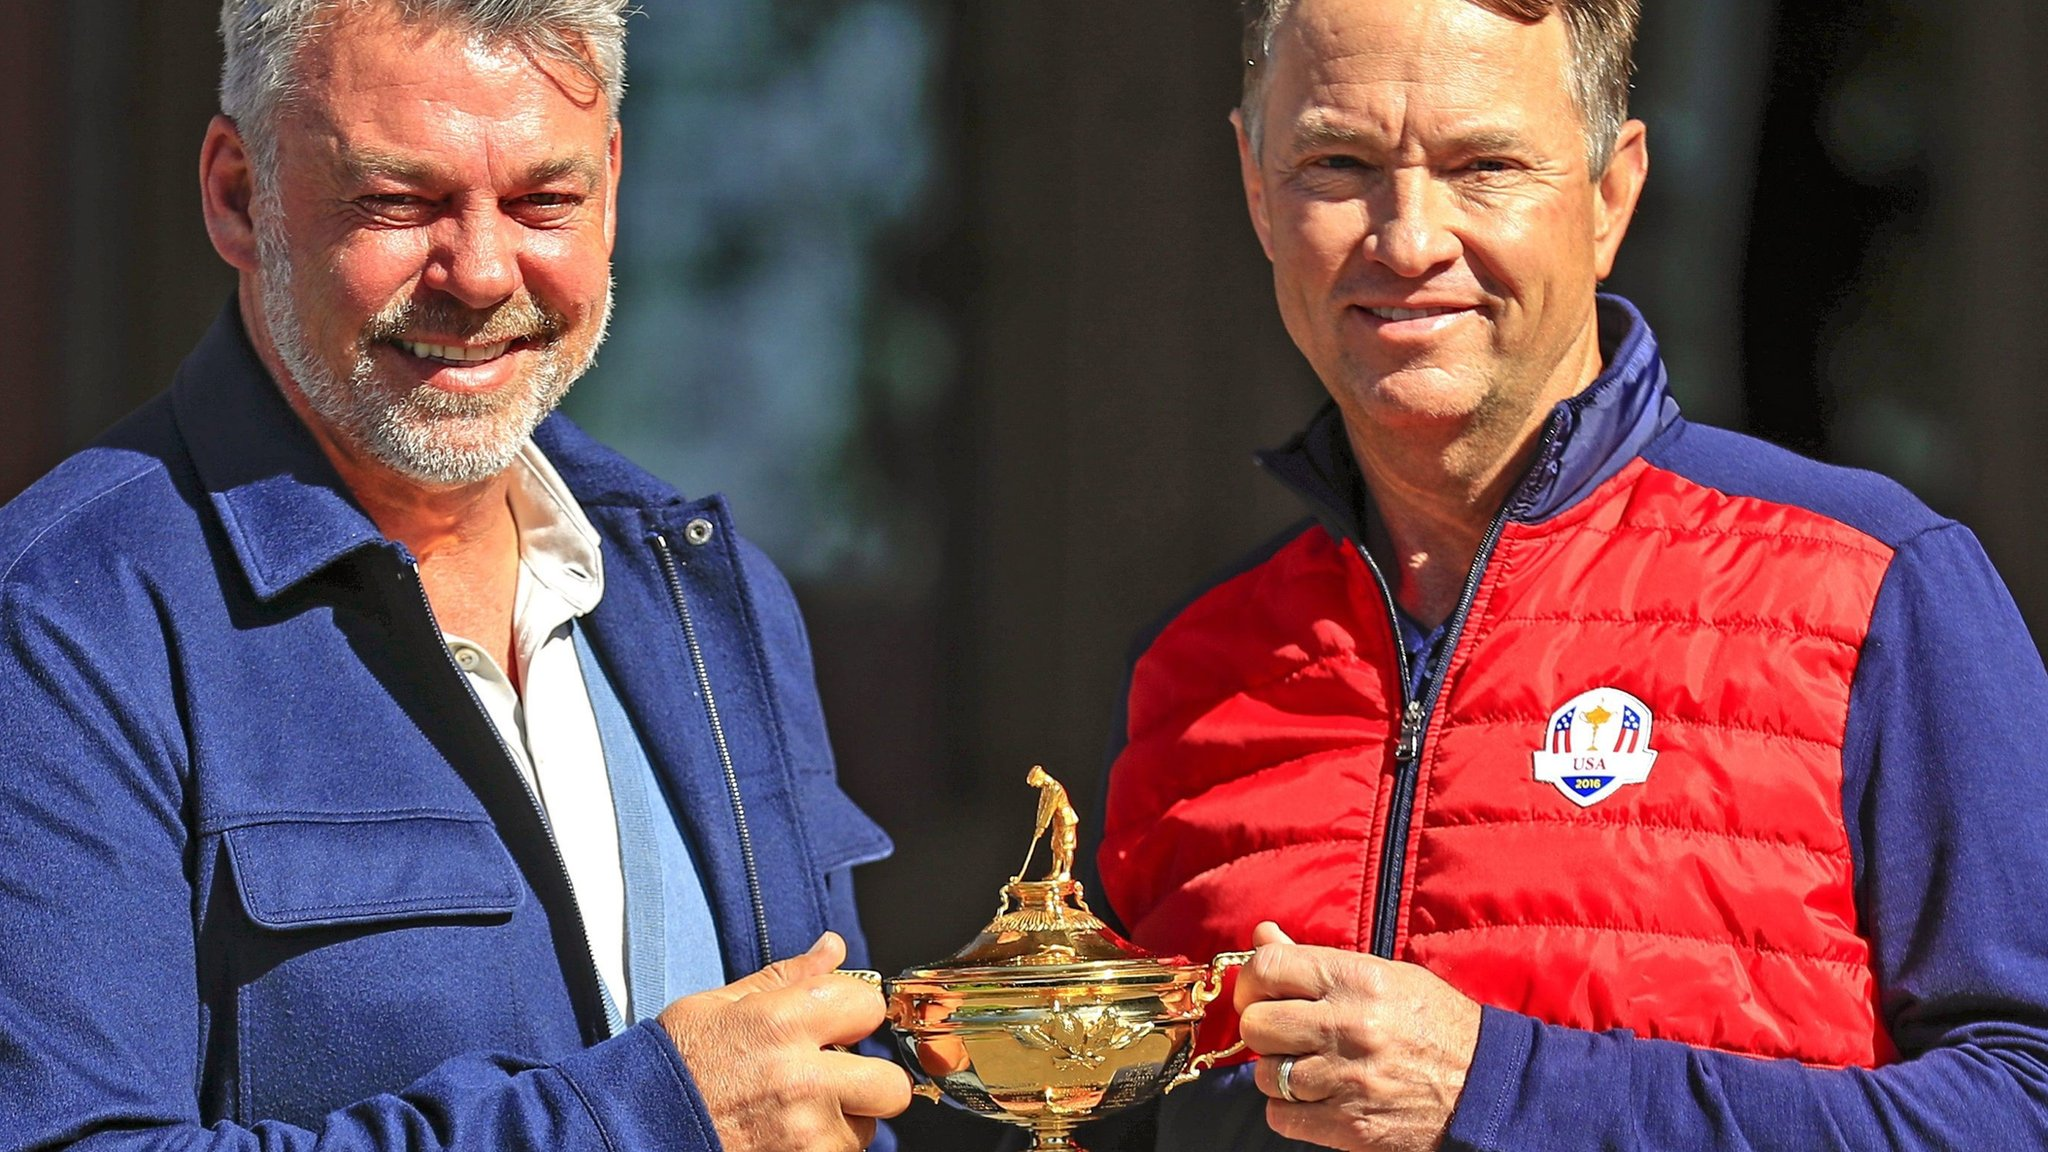 Ryder Cup 2016: Will US end Europe's 20-year domination?